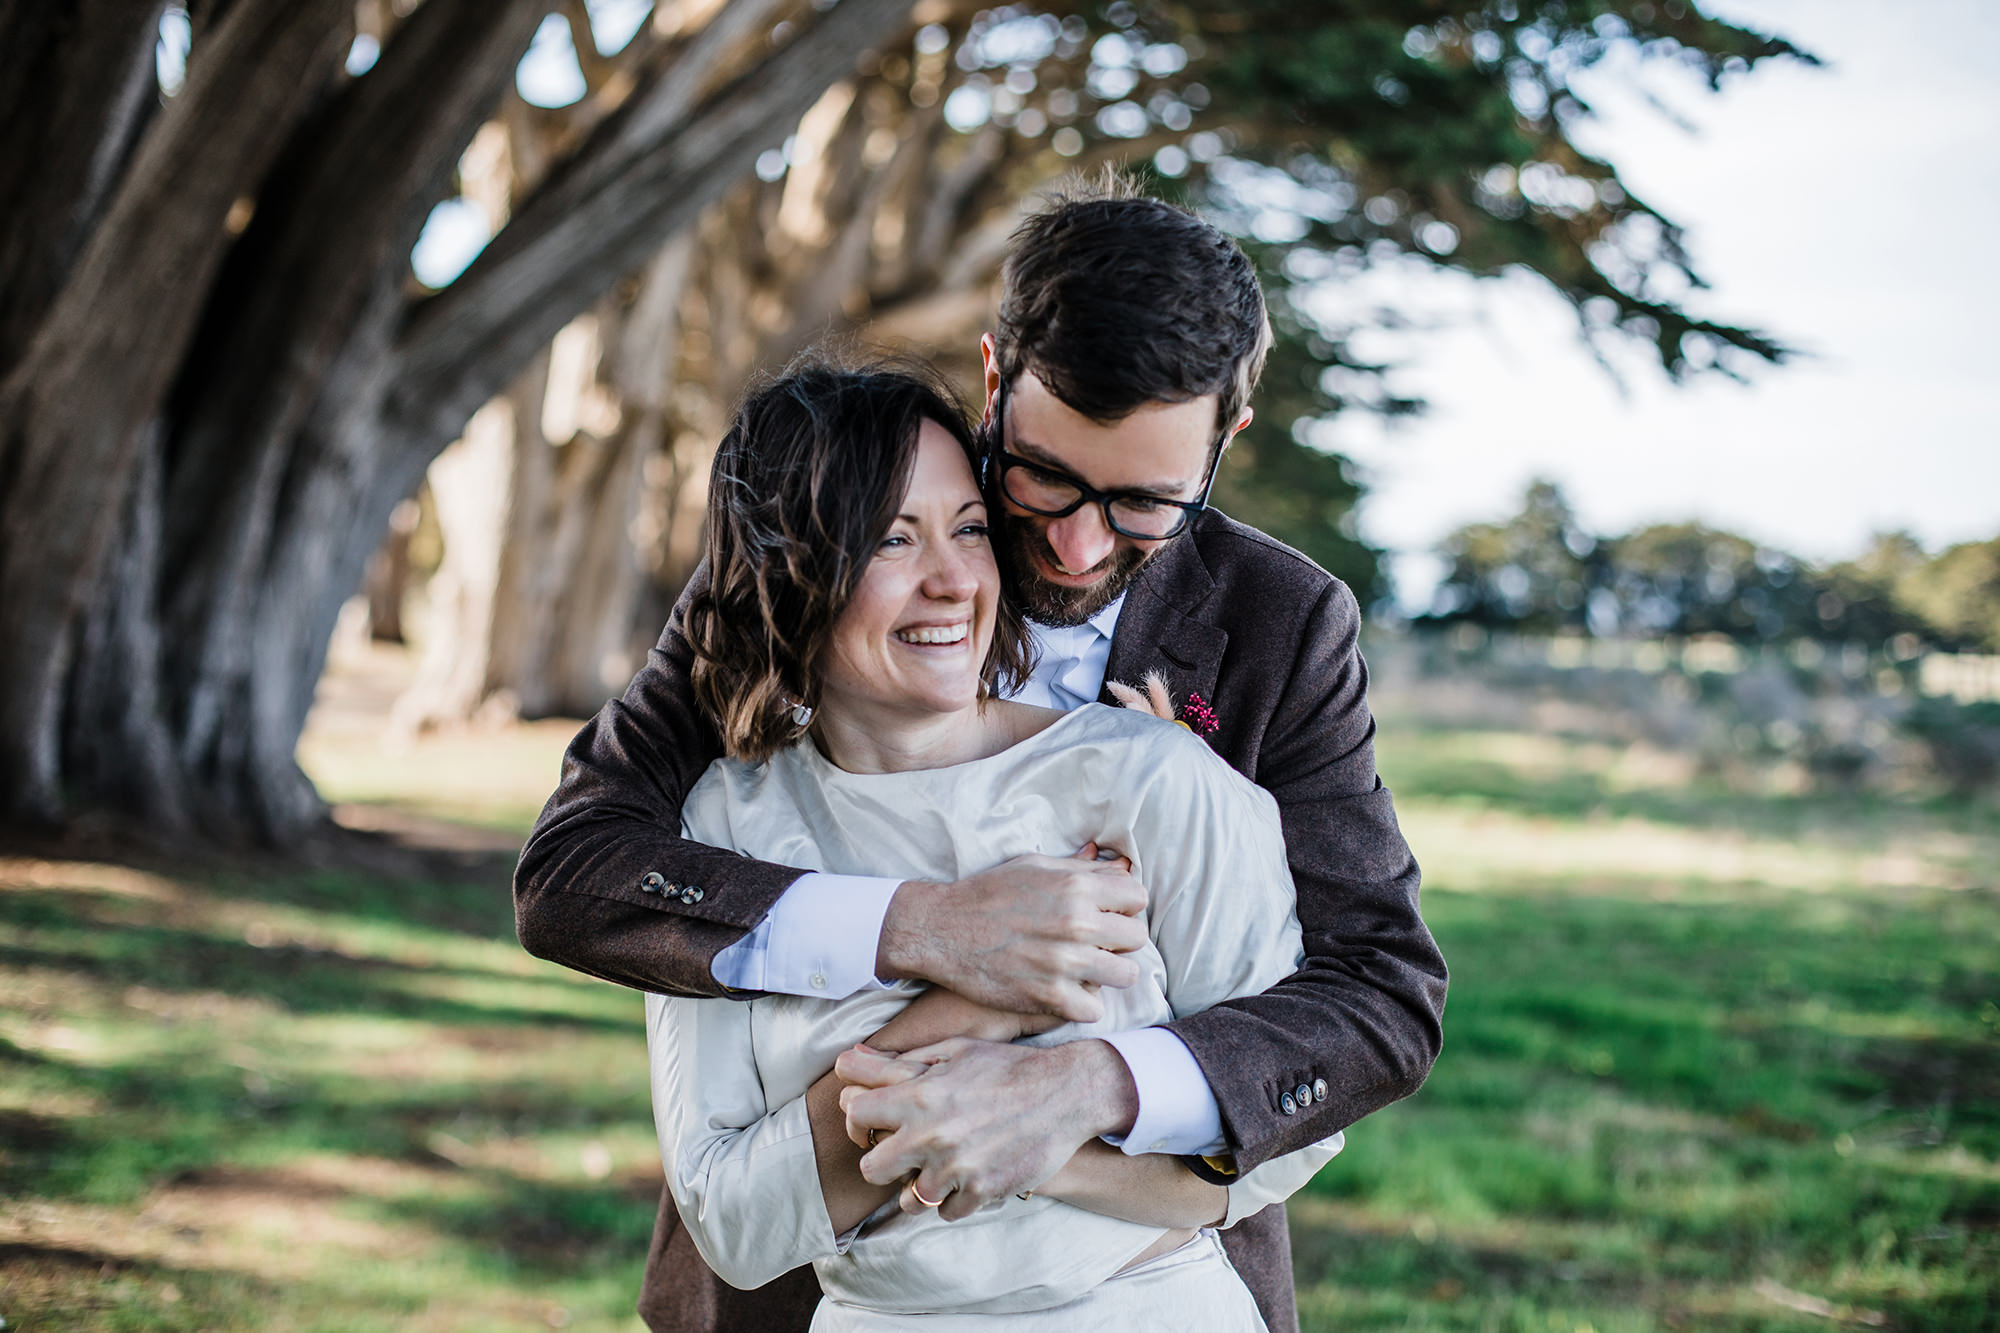 Groom and Bride having fun the Cypress Tree Tunnel for Point Reyes Elopement.